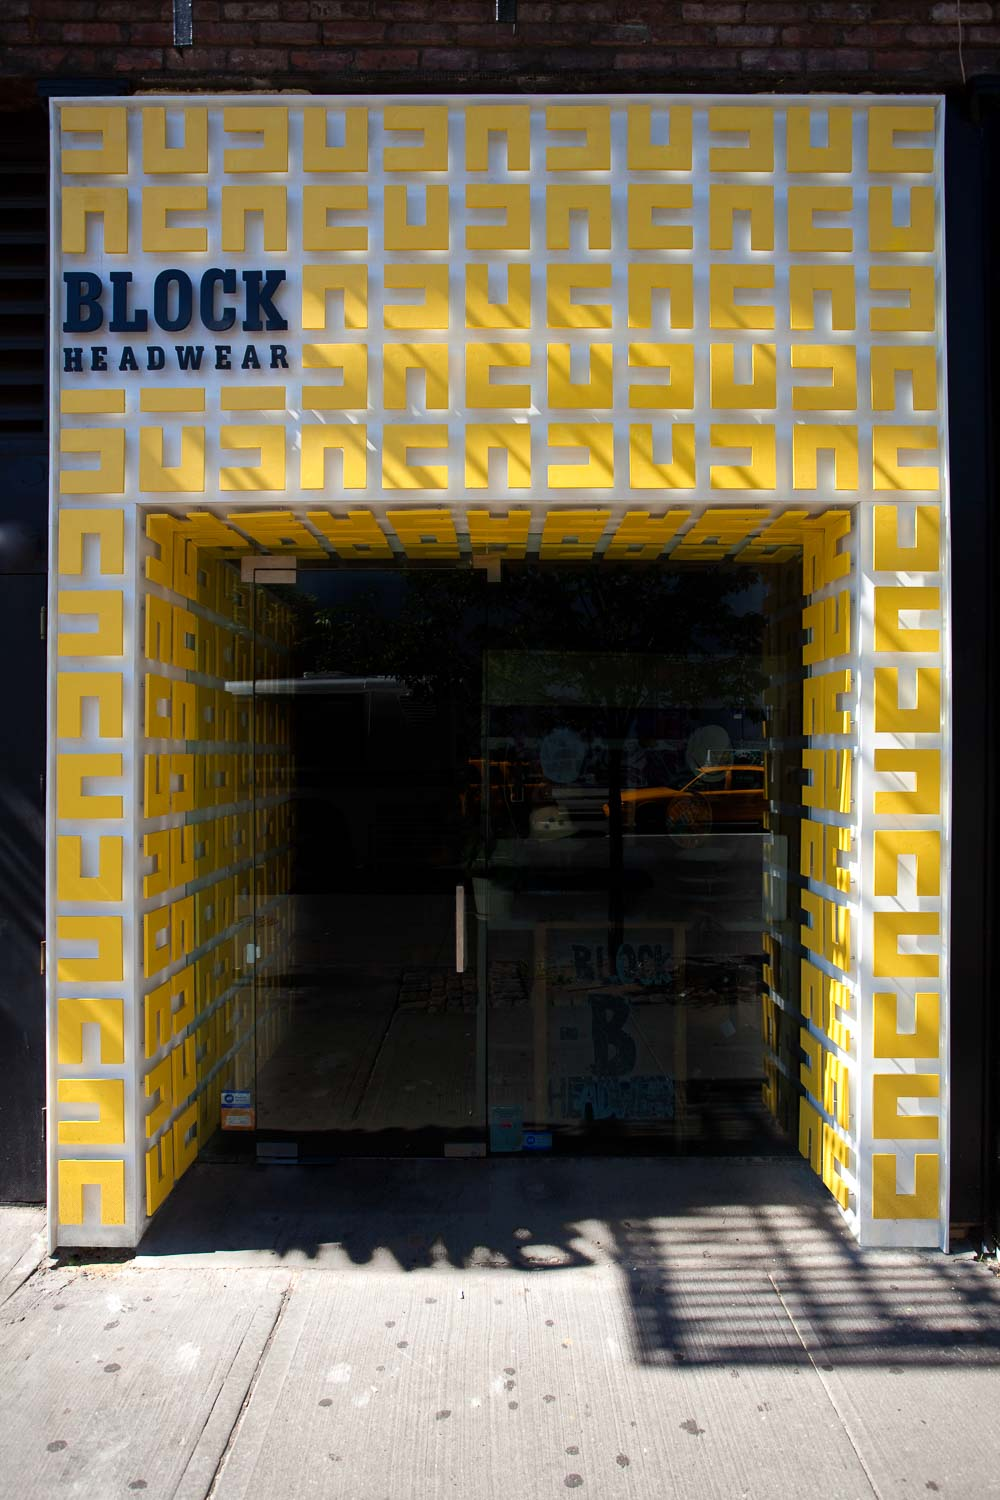 The Storefront Design